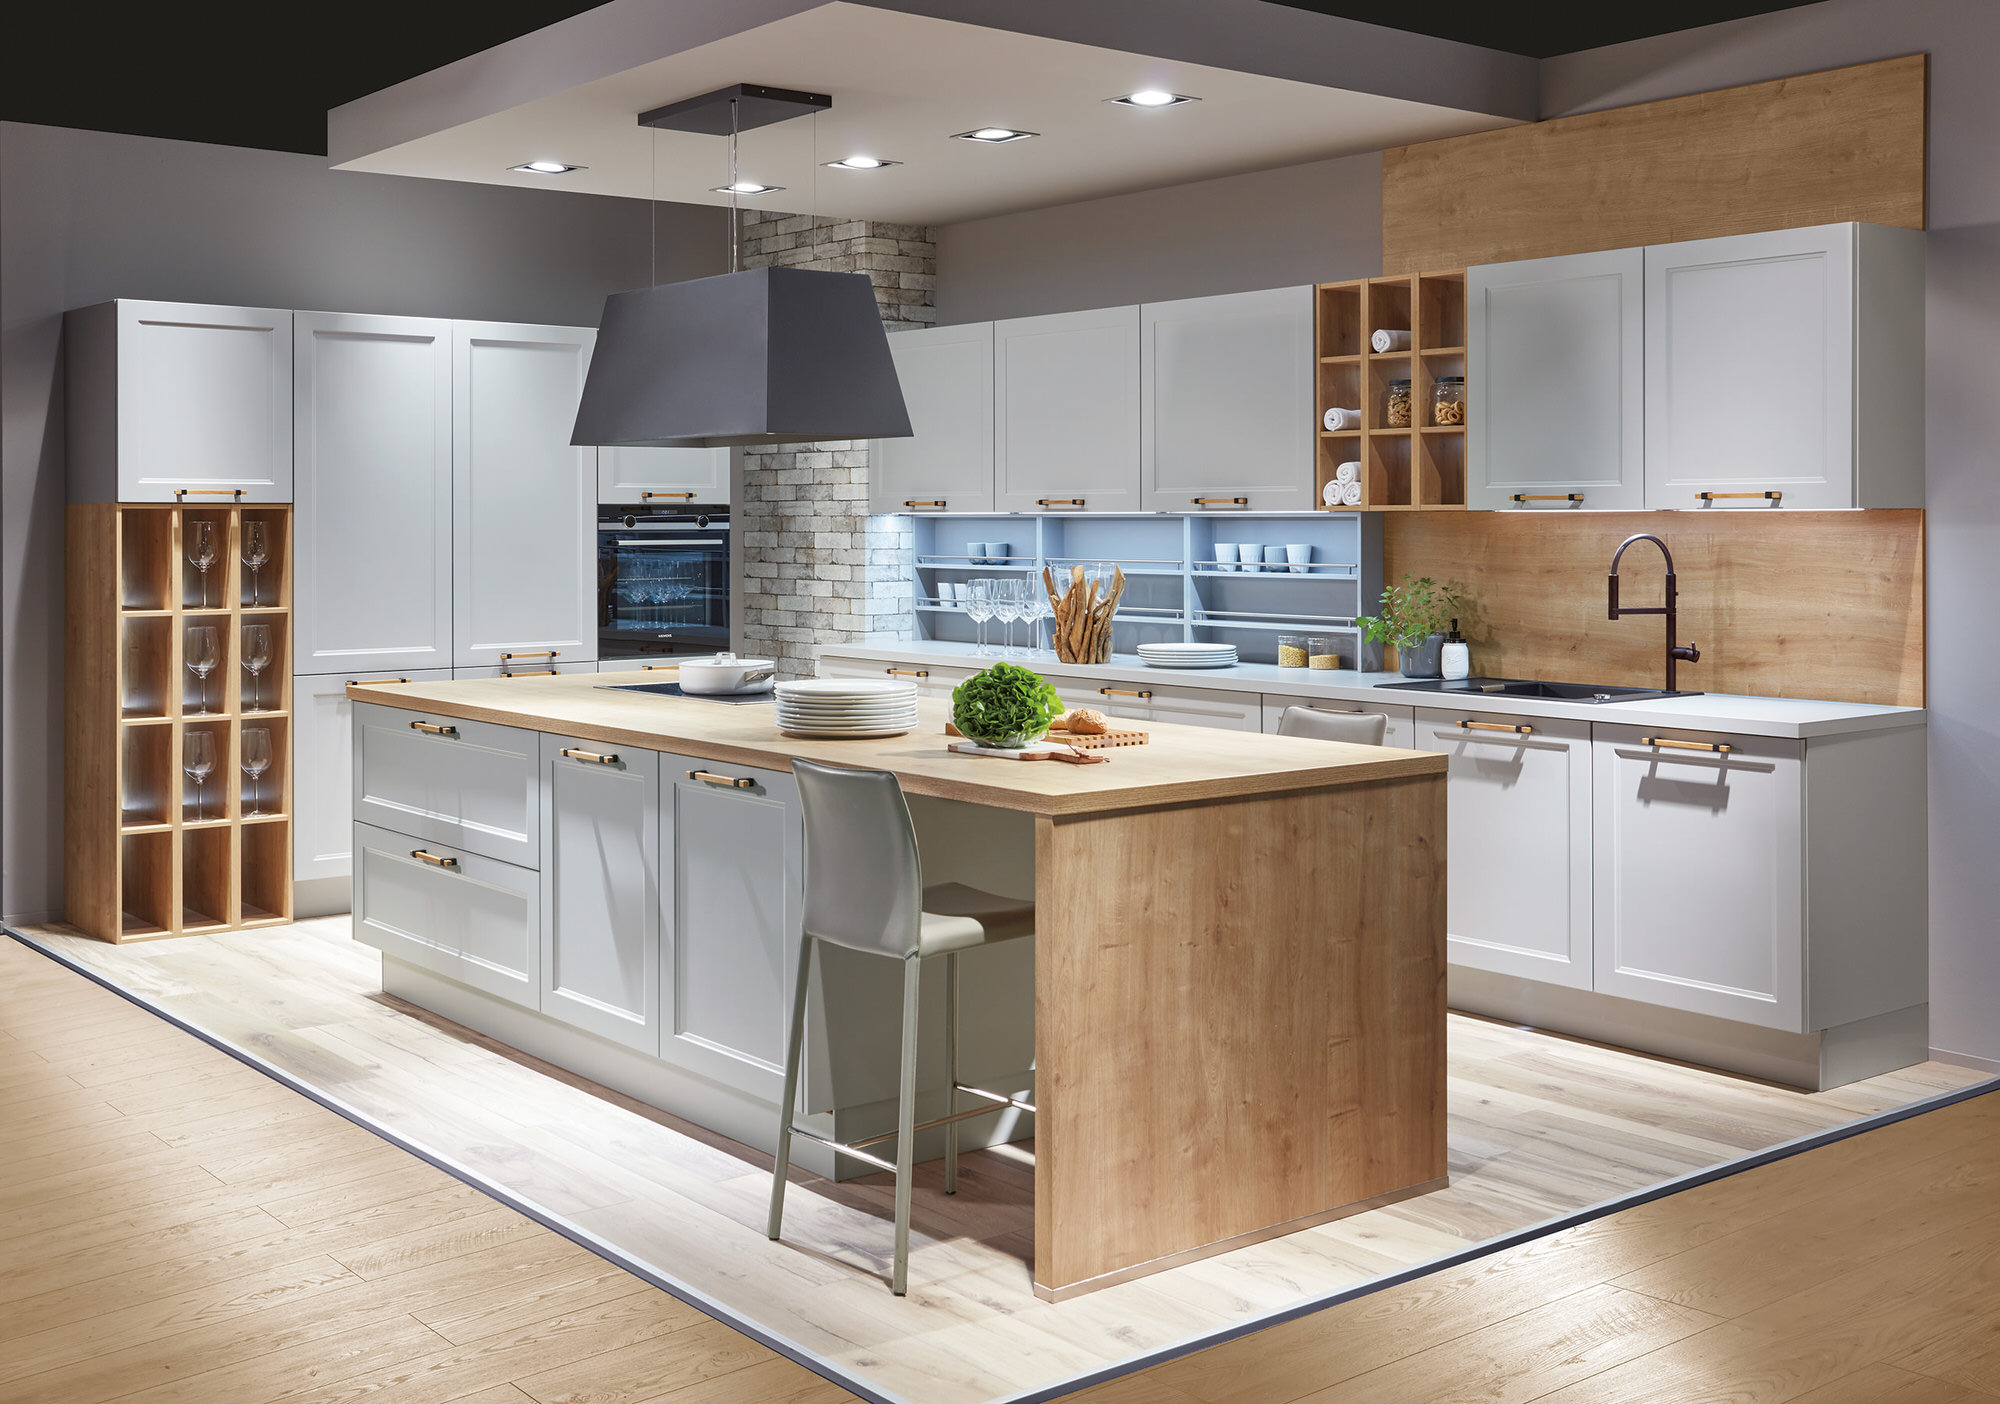 Free Kitchen Design Consultation UK | German Designer Kitchens | Kitchen Showroom North London